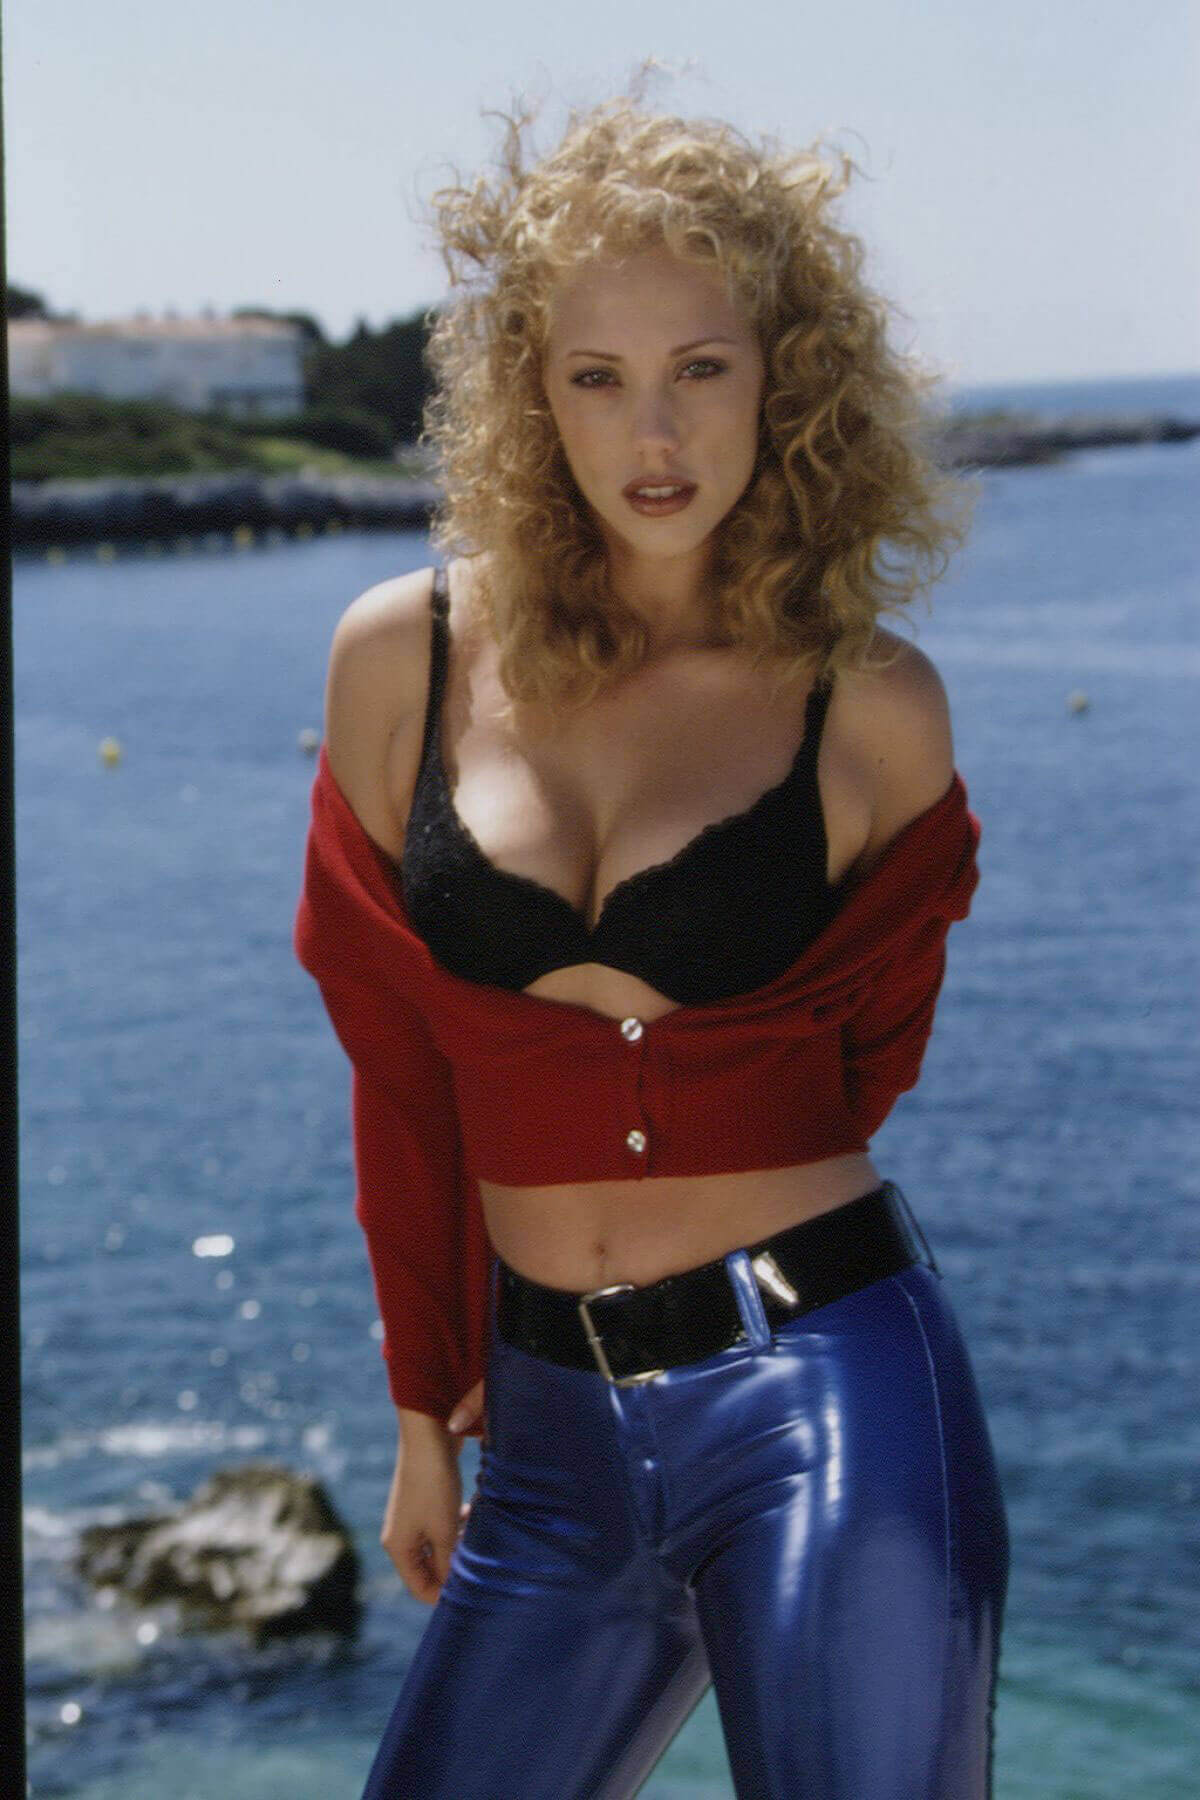 Elizabeth Berkley nude (41 photo), Tits, Sideboobs, Boobs, panties 2019